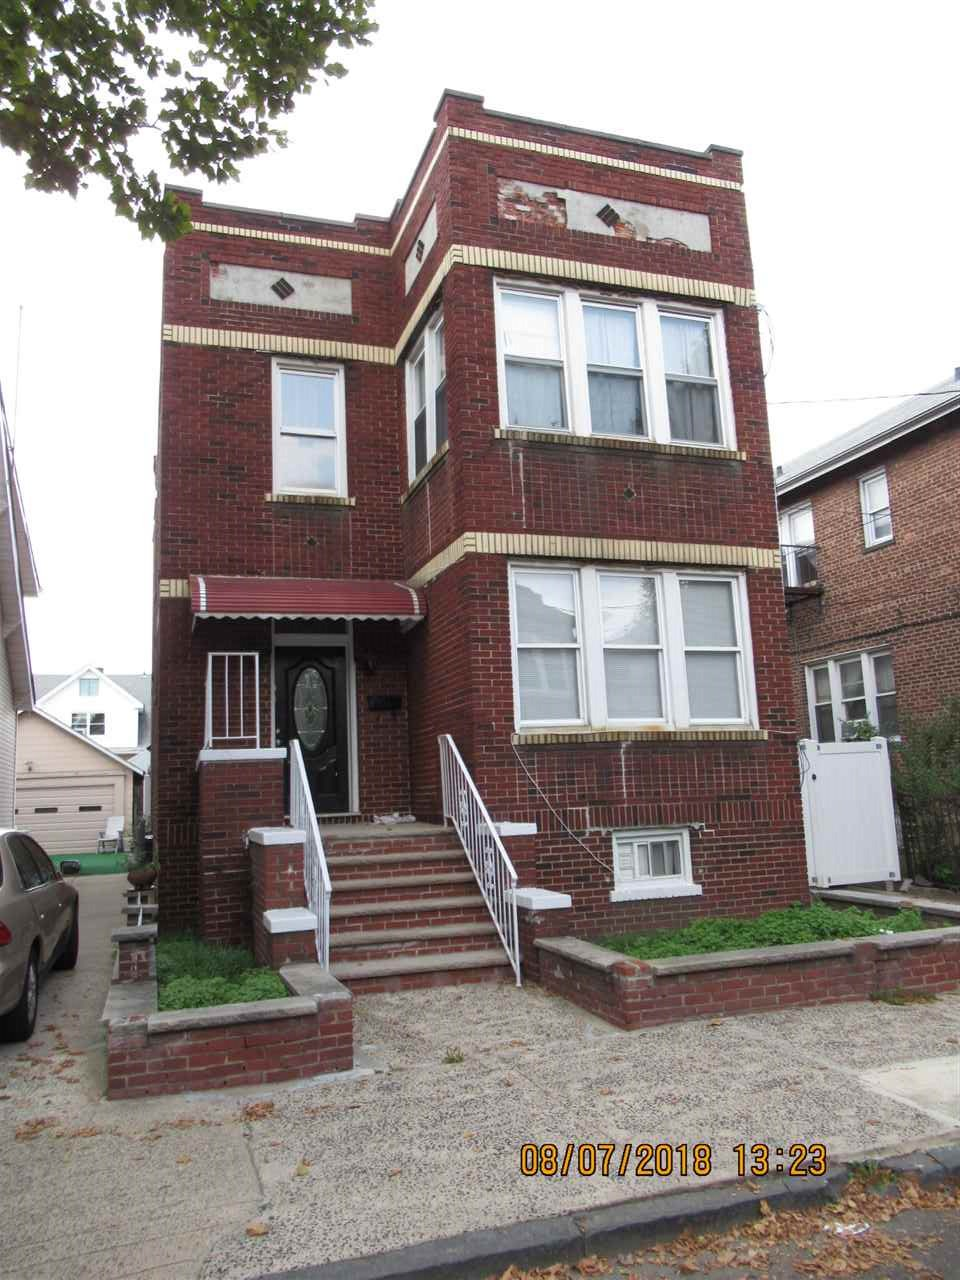 8307 2ND AVE, North Bergen, NJ 07047